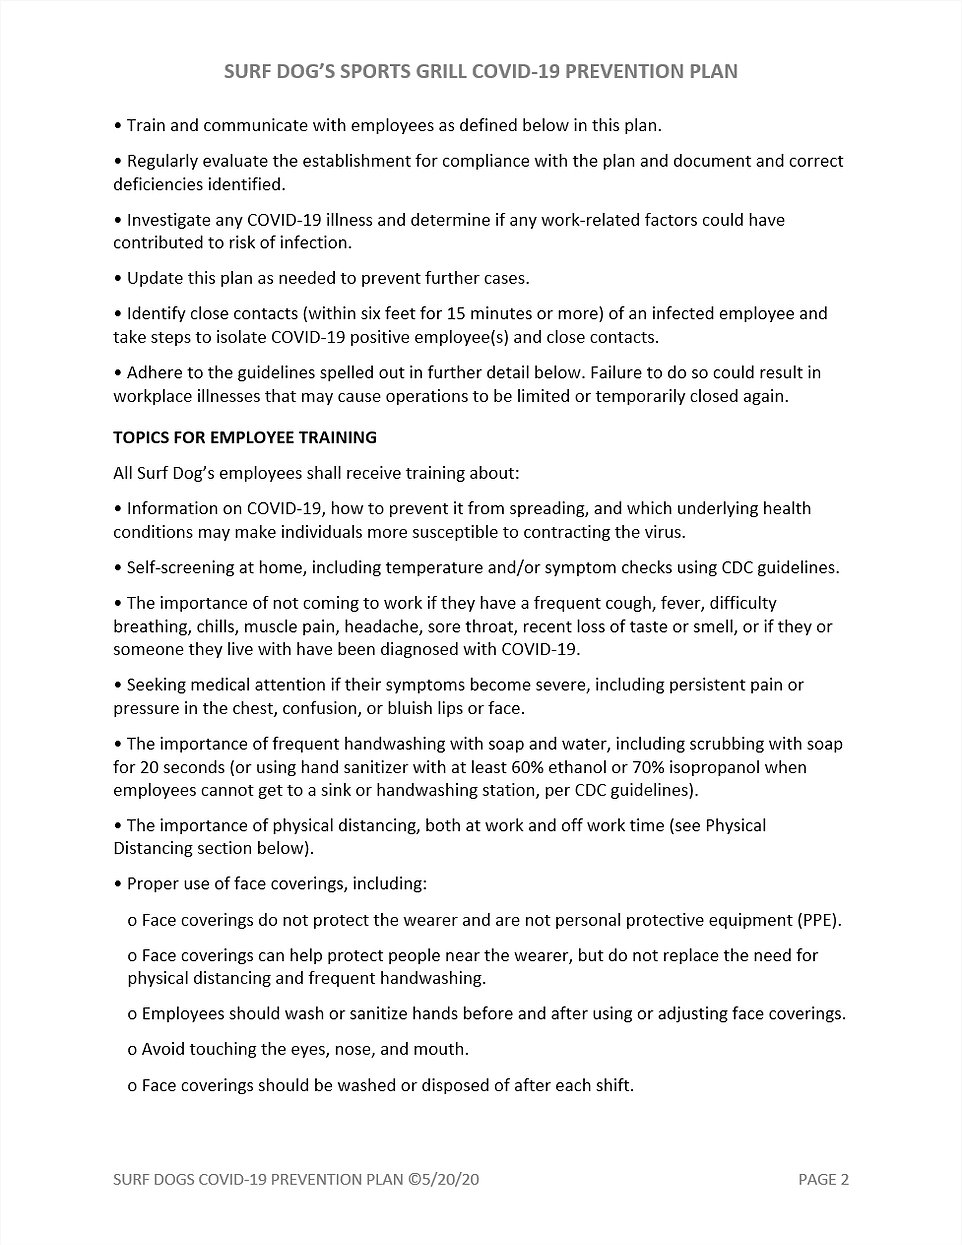 SDSG COVID-19 PREVENTION PLAN PAGE 2.jpg